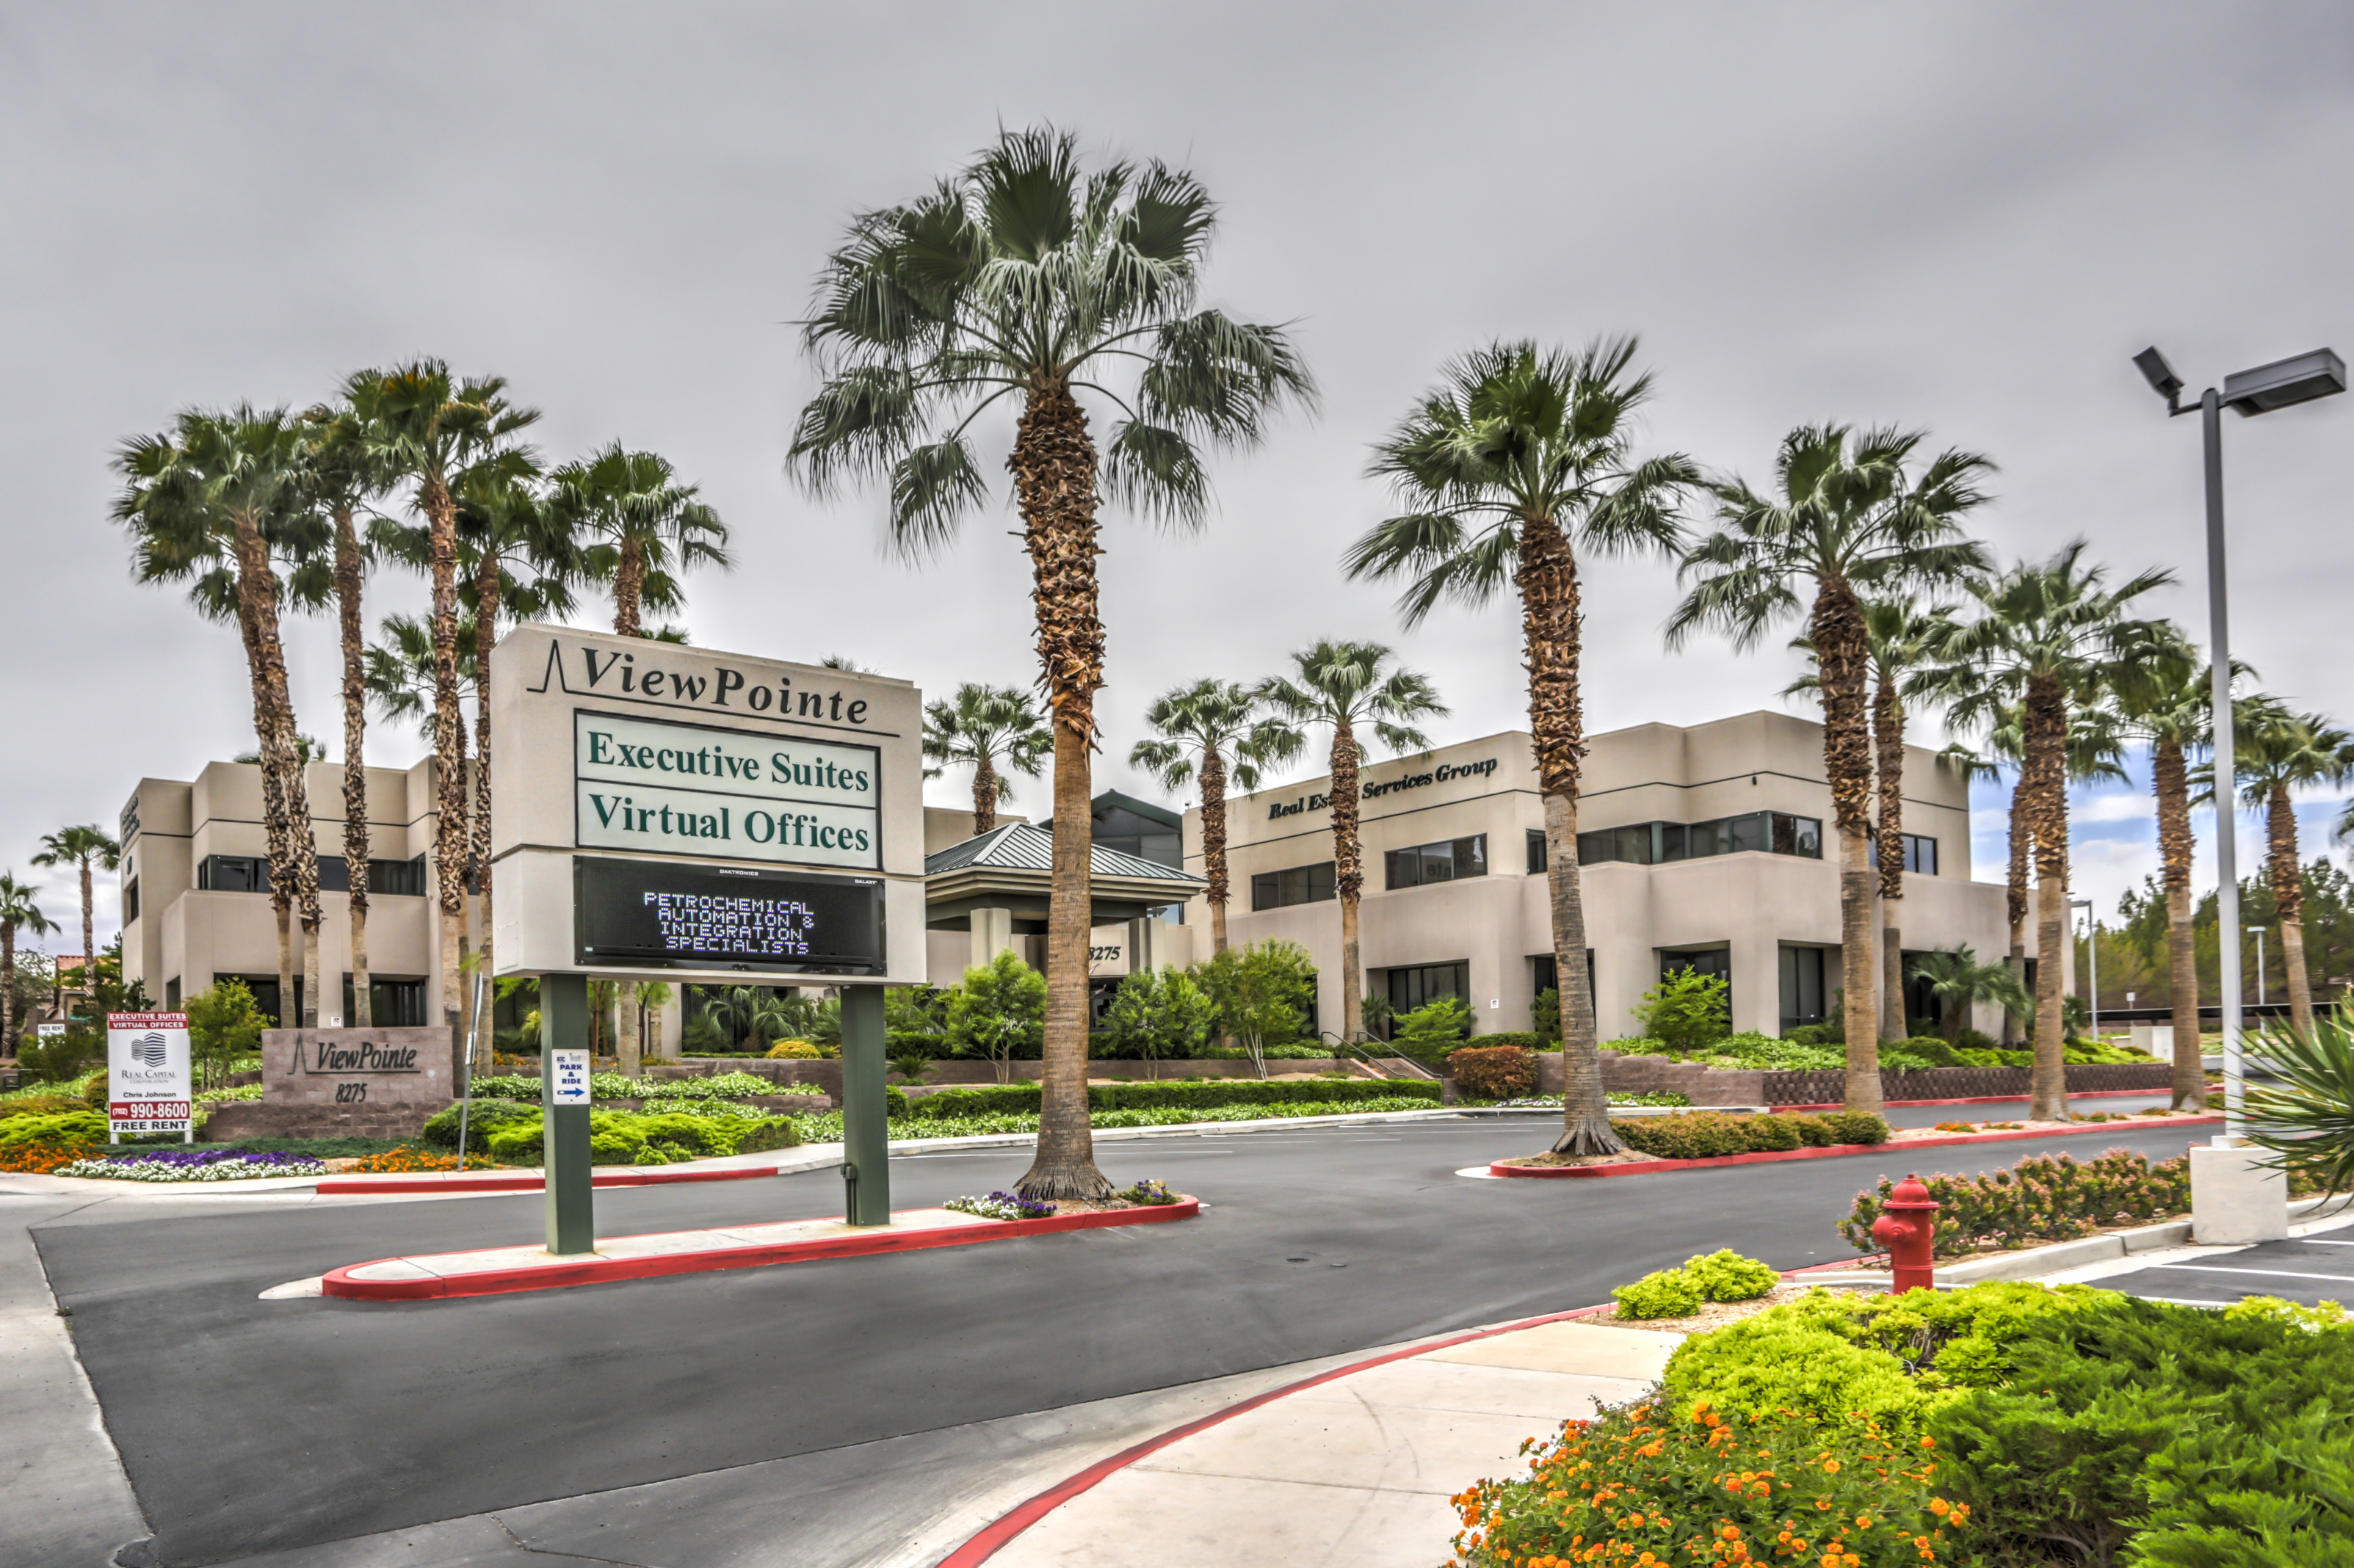 EXECUTIVE OFFICE SUITES -- Popular Solution for Business in Las Vegas!